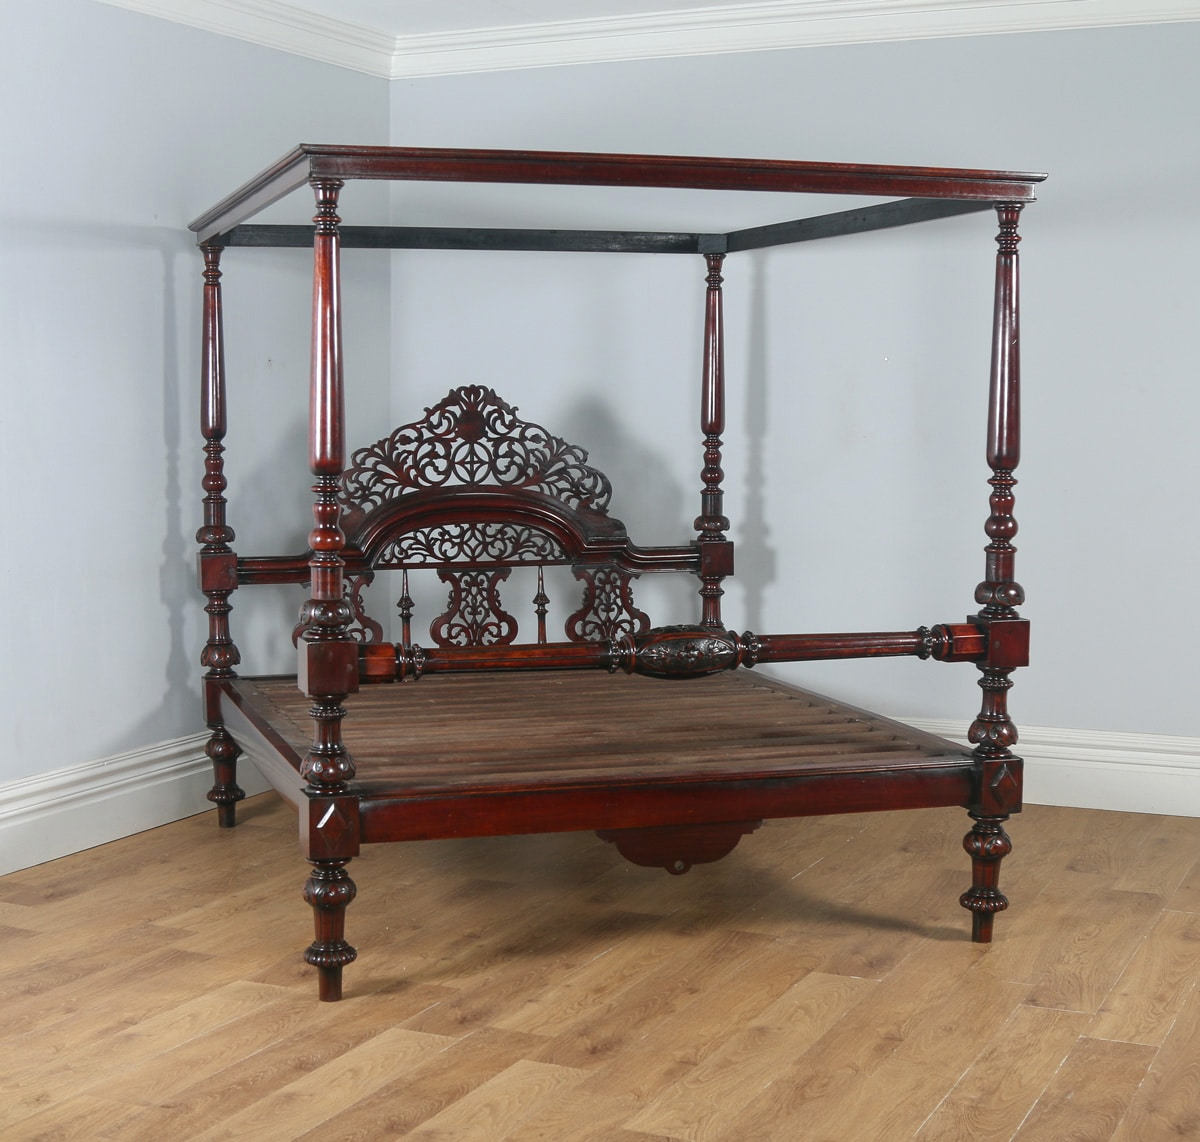 Super King Four Poster Bed 6ft